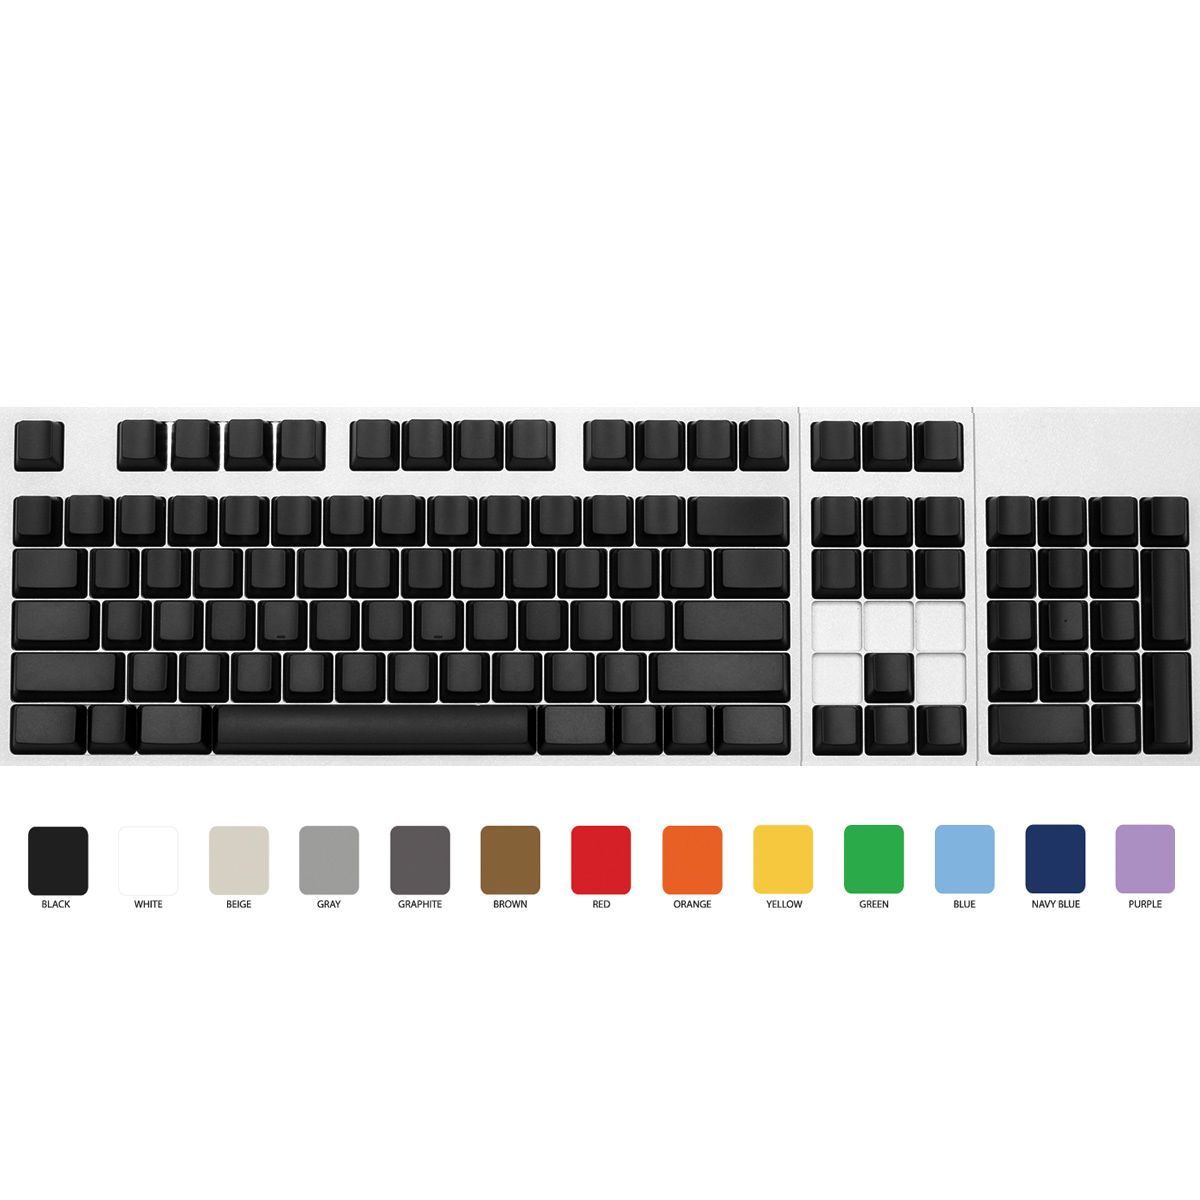 Max ANSI 104-key Cherry MX Replacement Keycap Set (Blank)